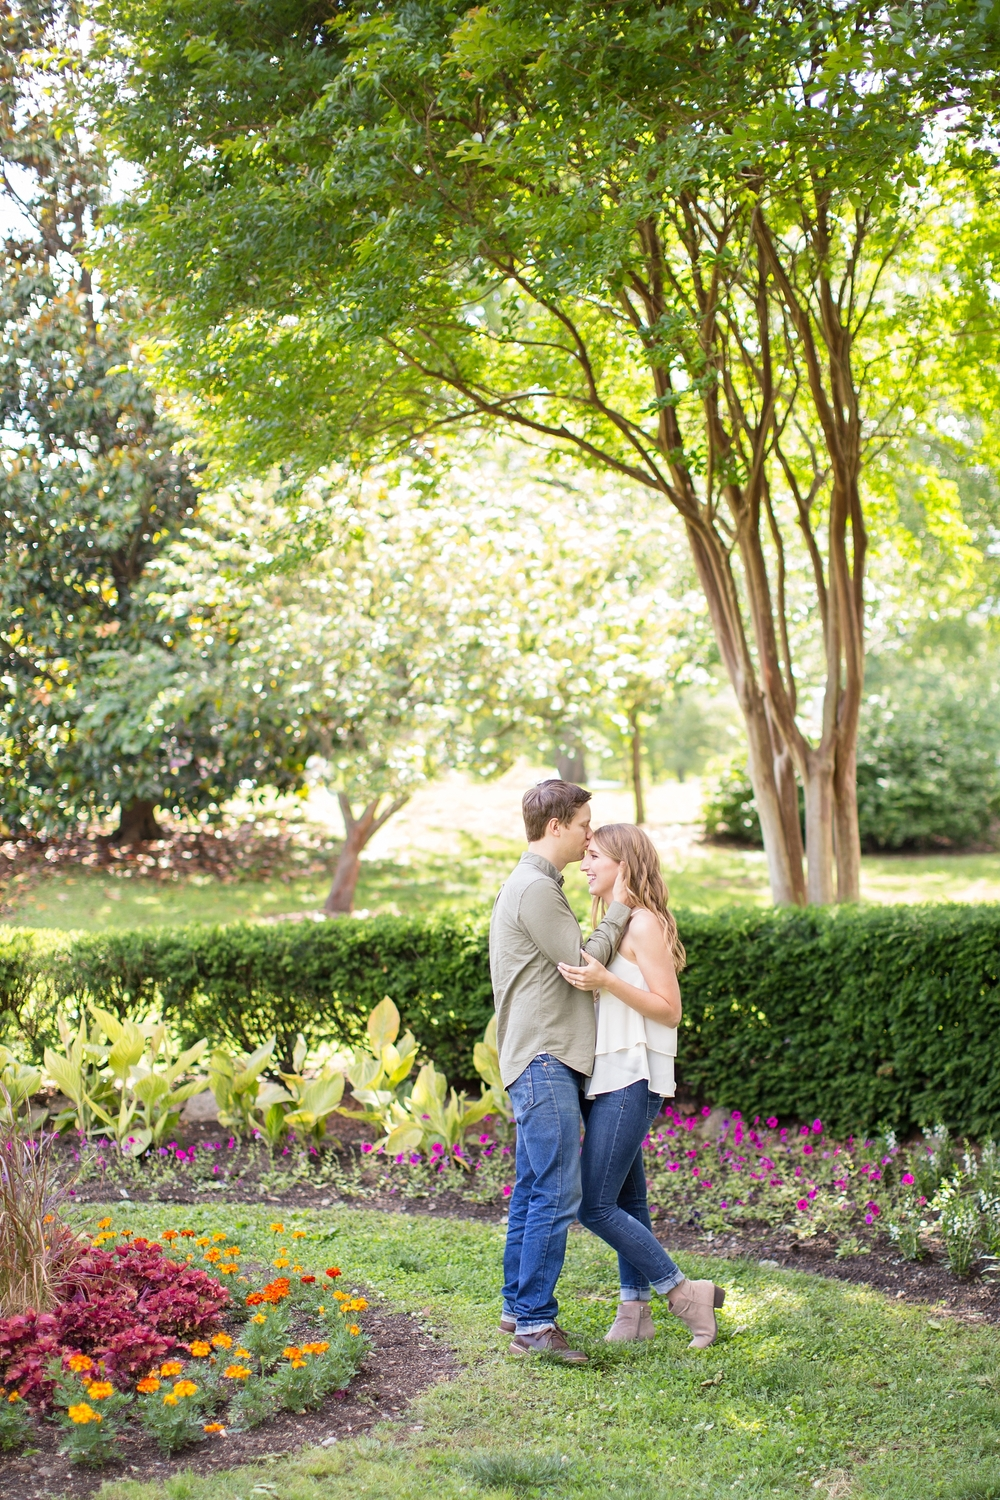 Erin & Jackson Engagement-36_anna grace photography nashville tennessee engagement photographer destination photographer photo.jpg